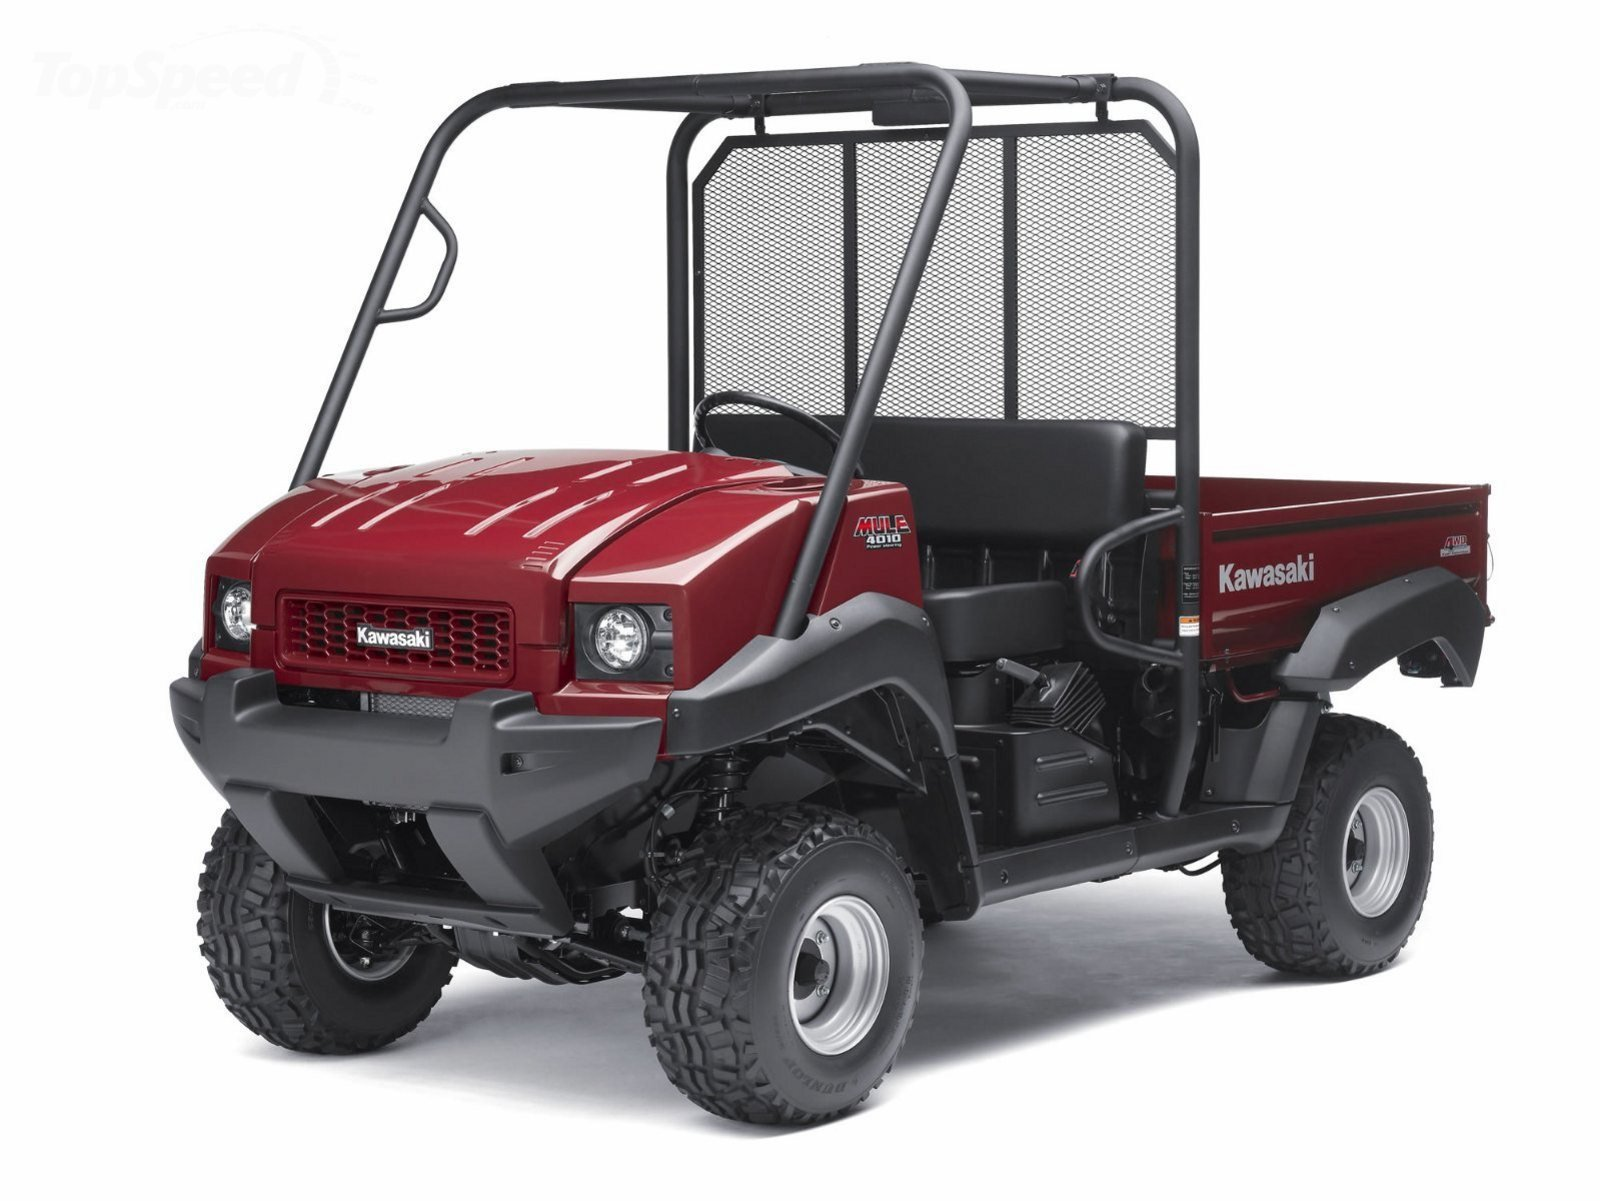 Kawasaki Mule 4x4 Review